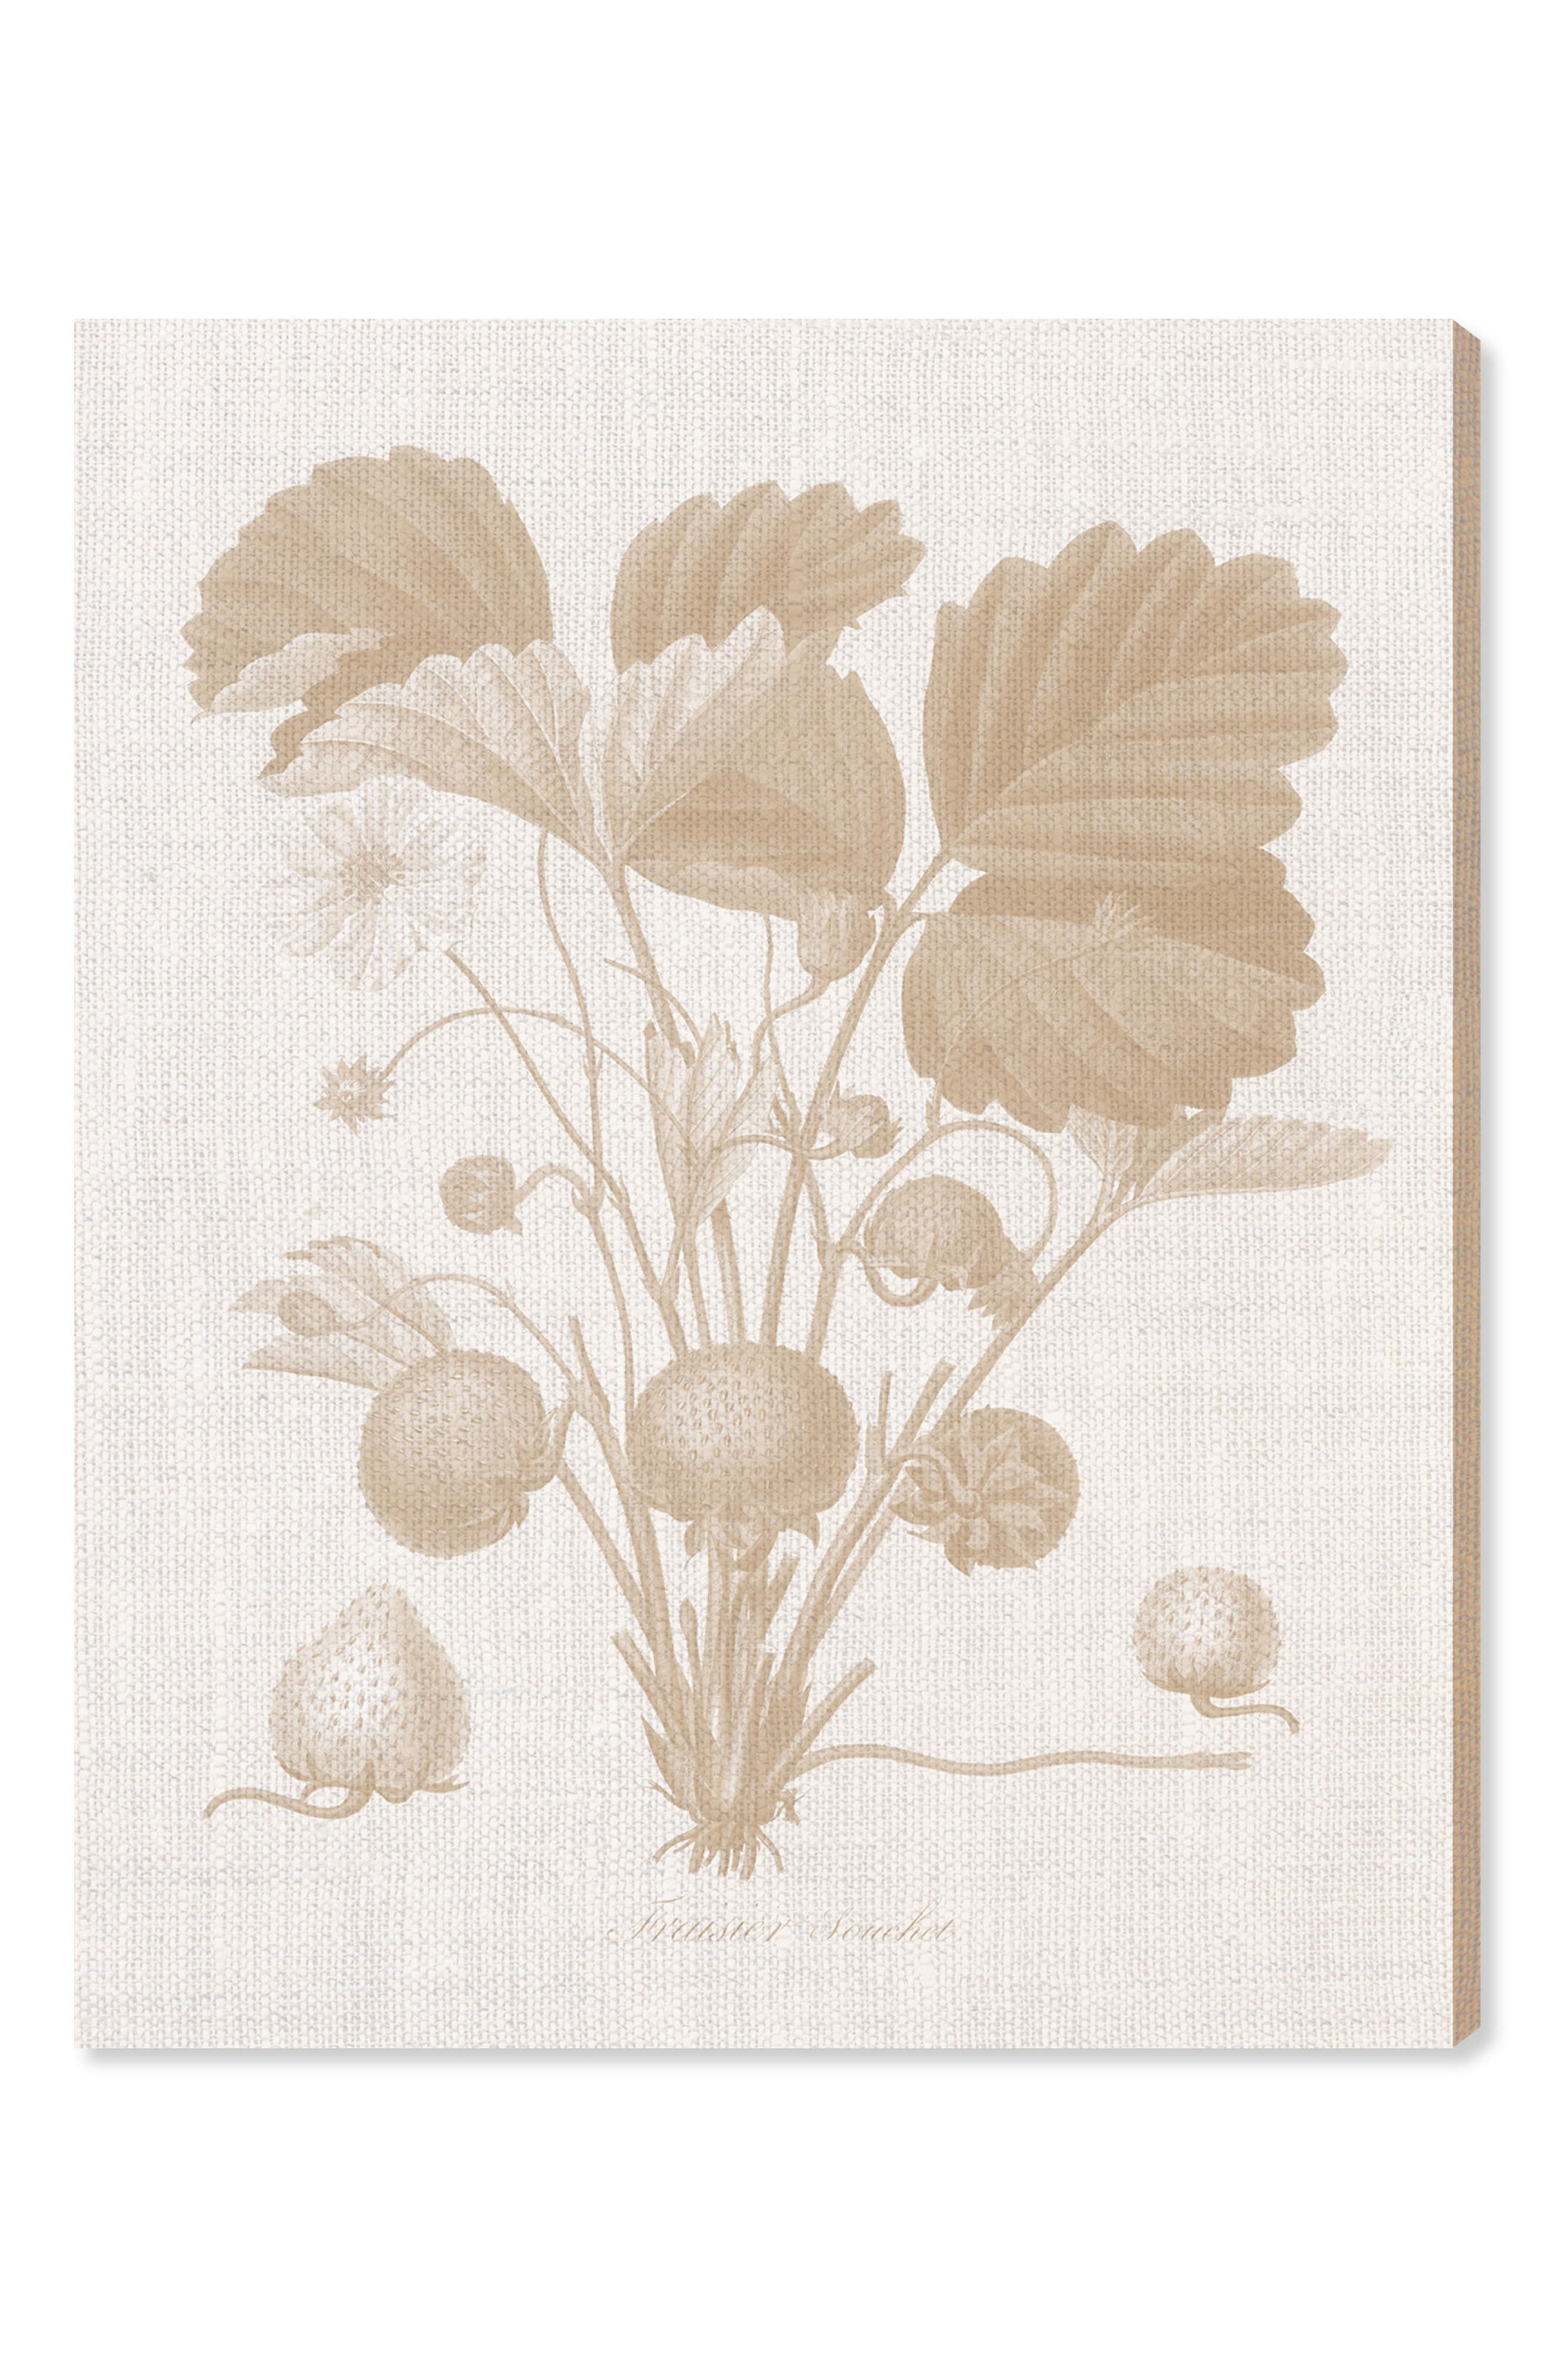 Alternate Image 1 Selected - Oliver Gal Fraisier II Canvas Wall Art